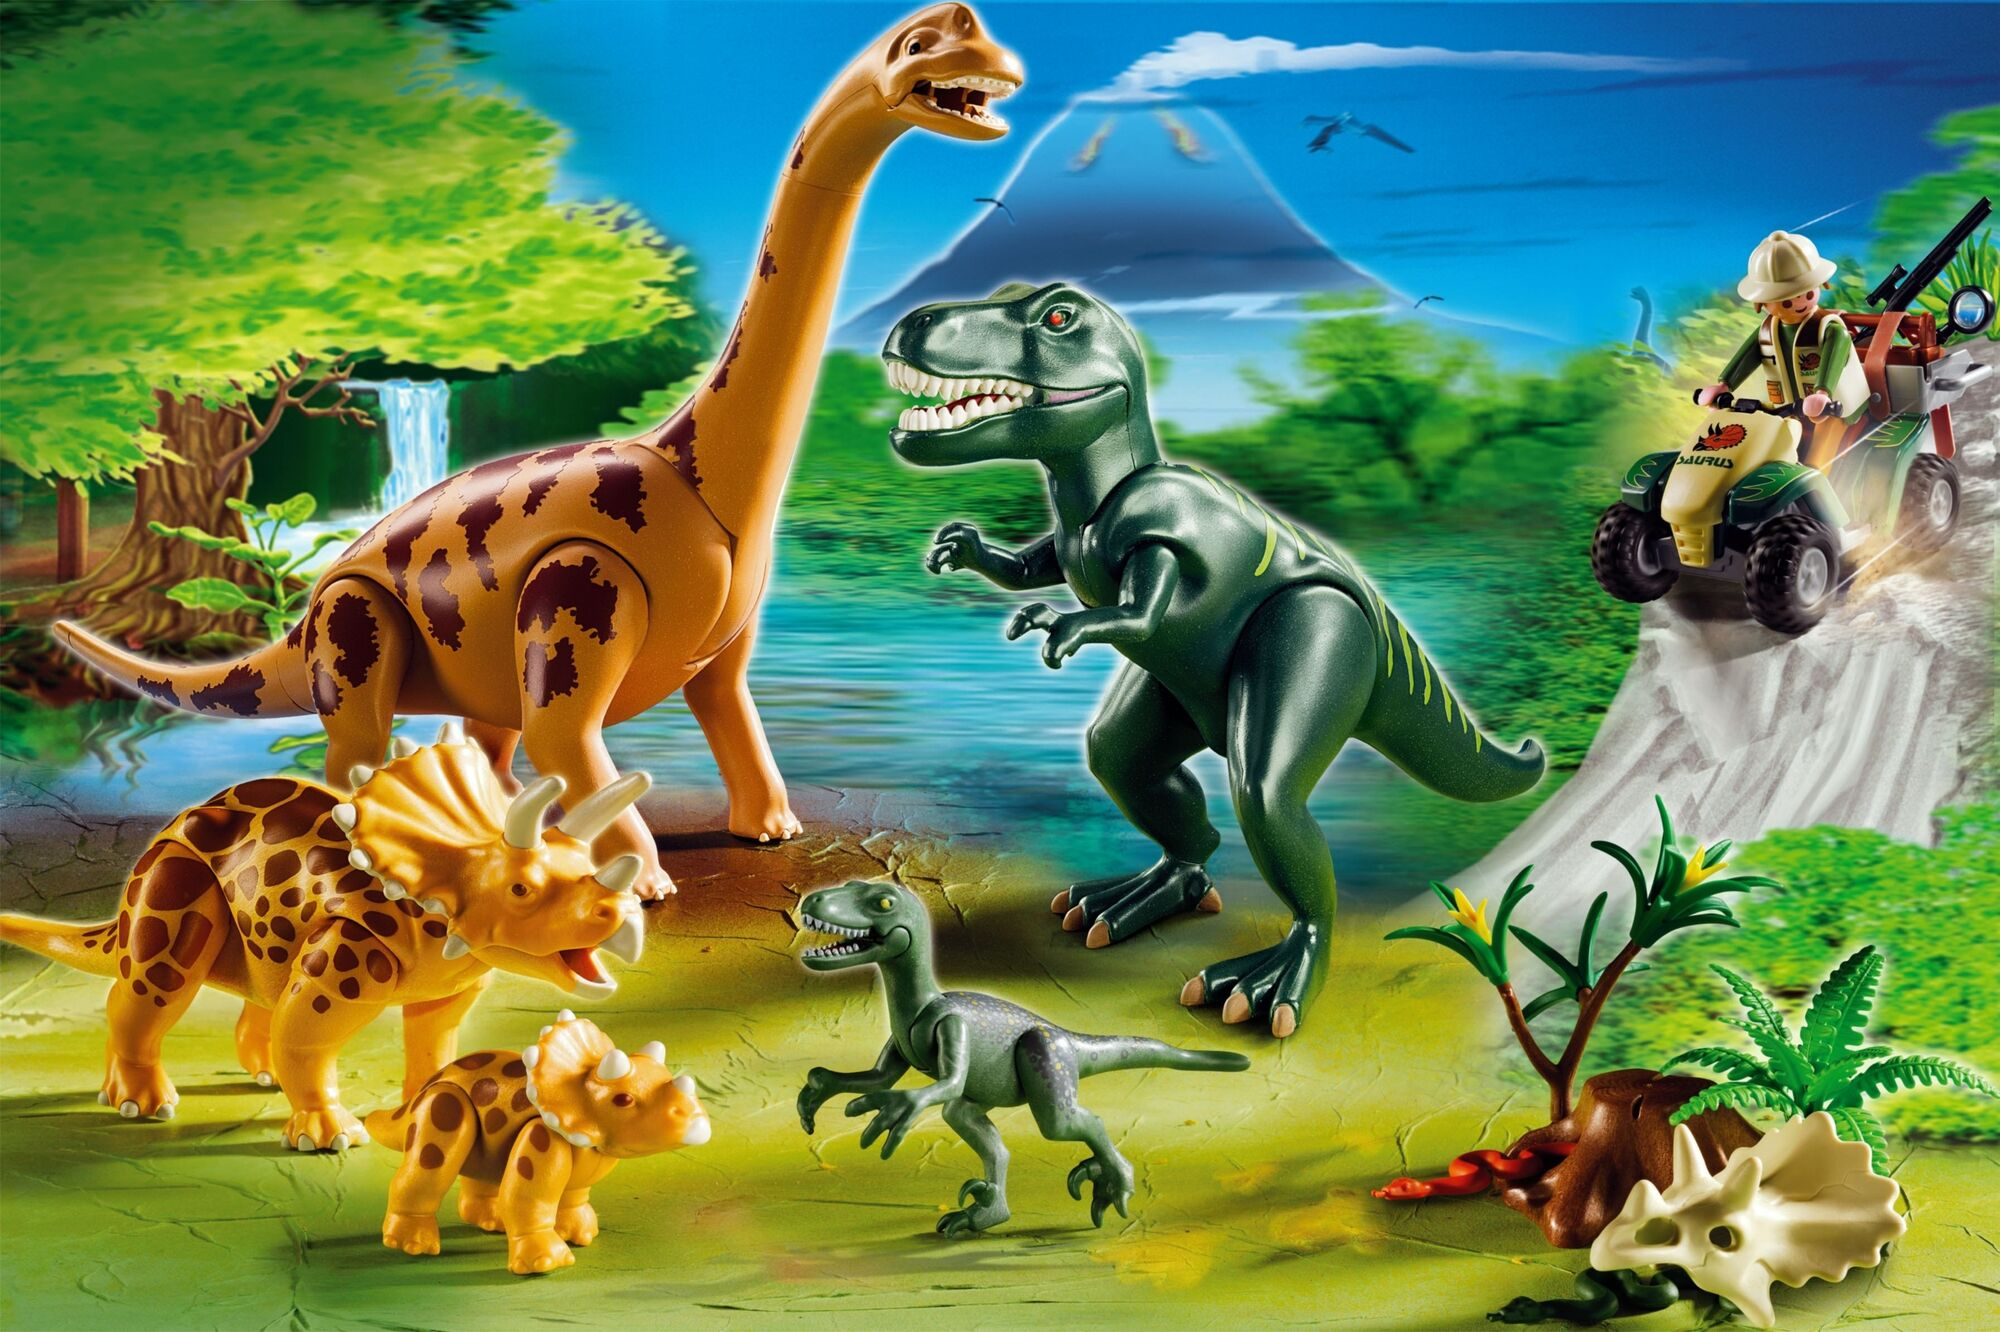 Brachiosaurus playmobil wiki fandom powered by wikia - Dinosaur playmobile ...